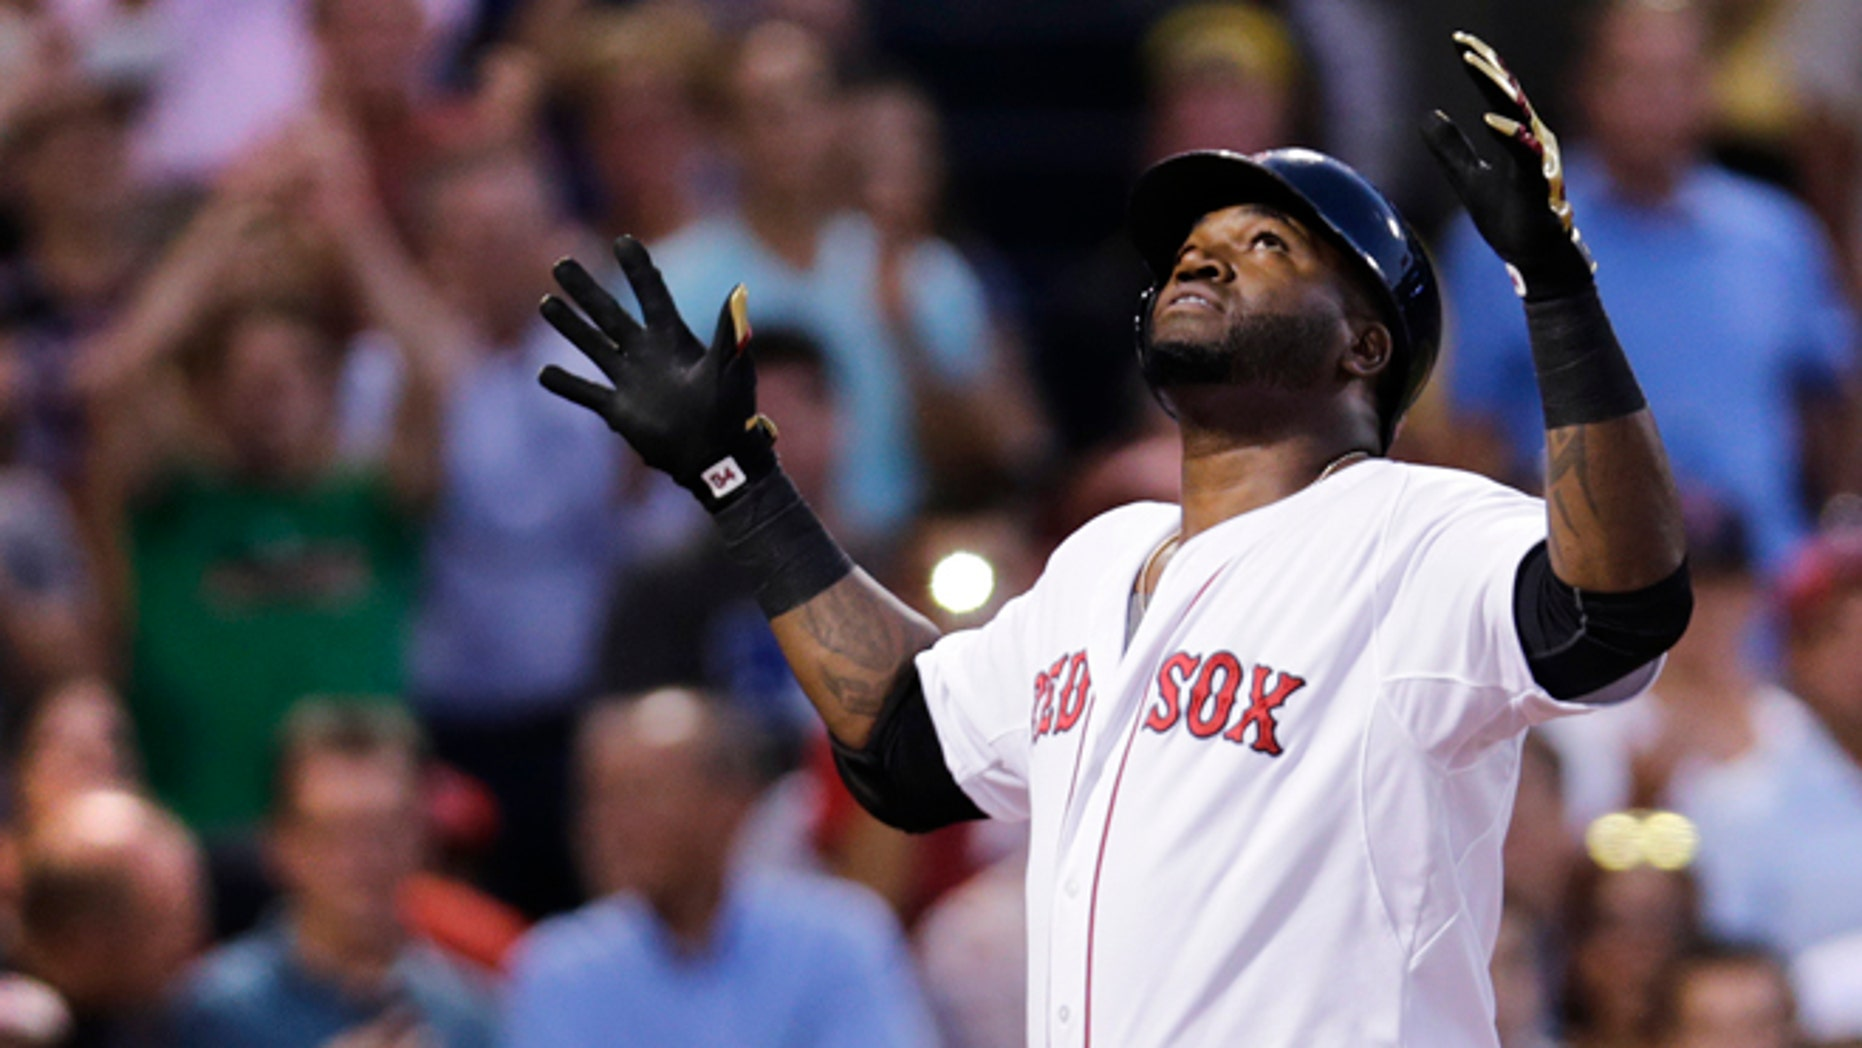 Boston Red Sox designated hitter David Ortiz reacts as he crosses home plate after his solo home run off Cleveland Indians starting pitcher Corey Kluber during the second inning of a baseball game at Fenway Park in Boston, Wednesday, Aug. 19, 2015. (AP Photo/Charles Krupa)